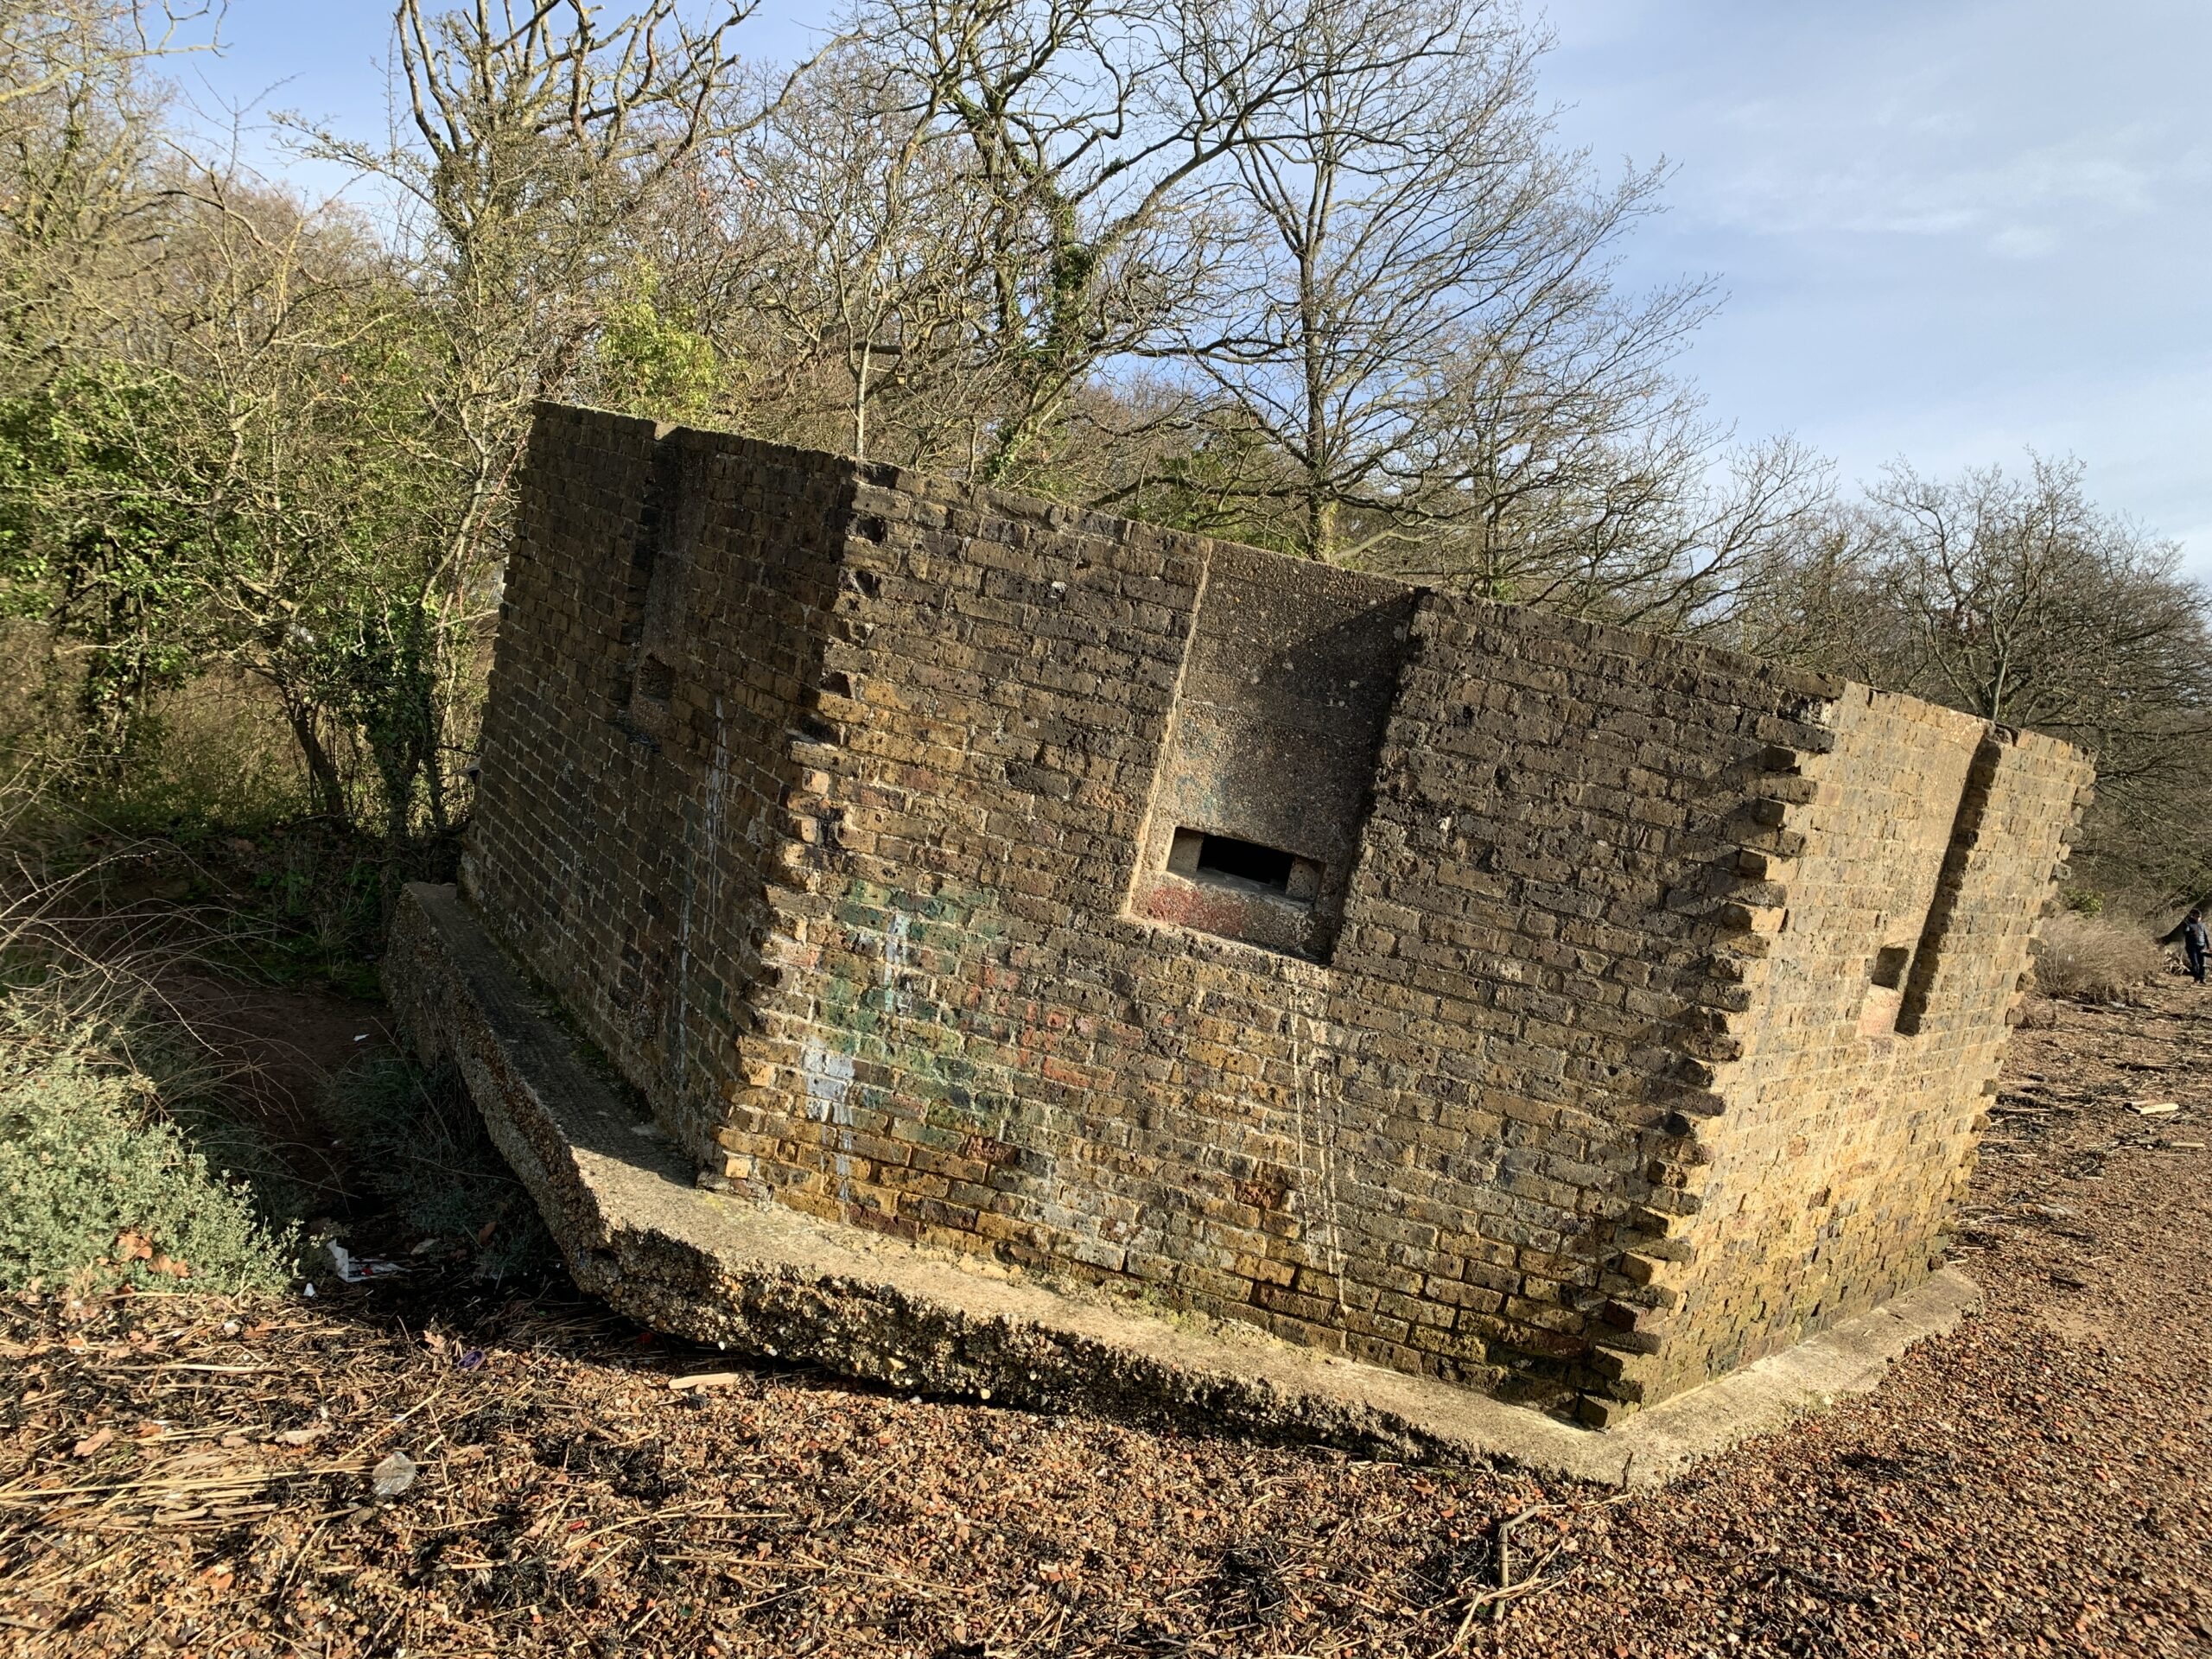 Cockham Wood FW3/22 Pillbox